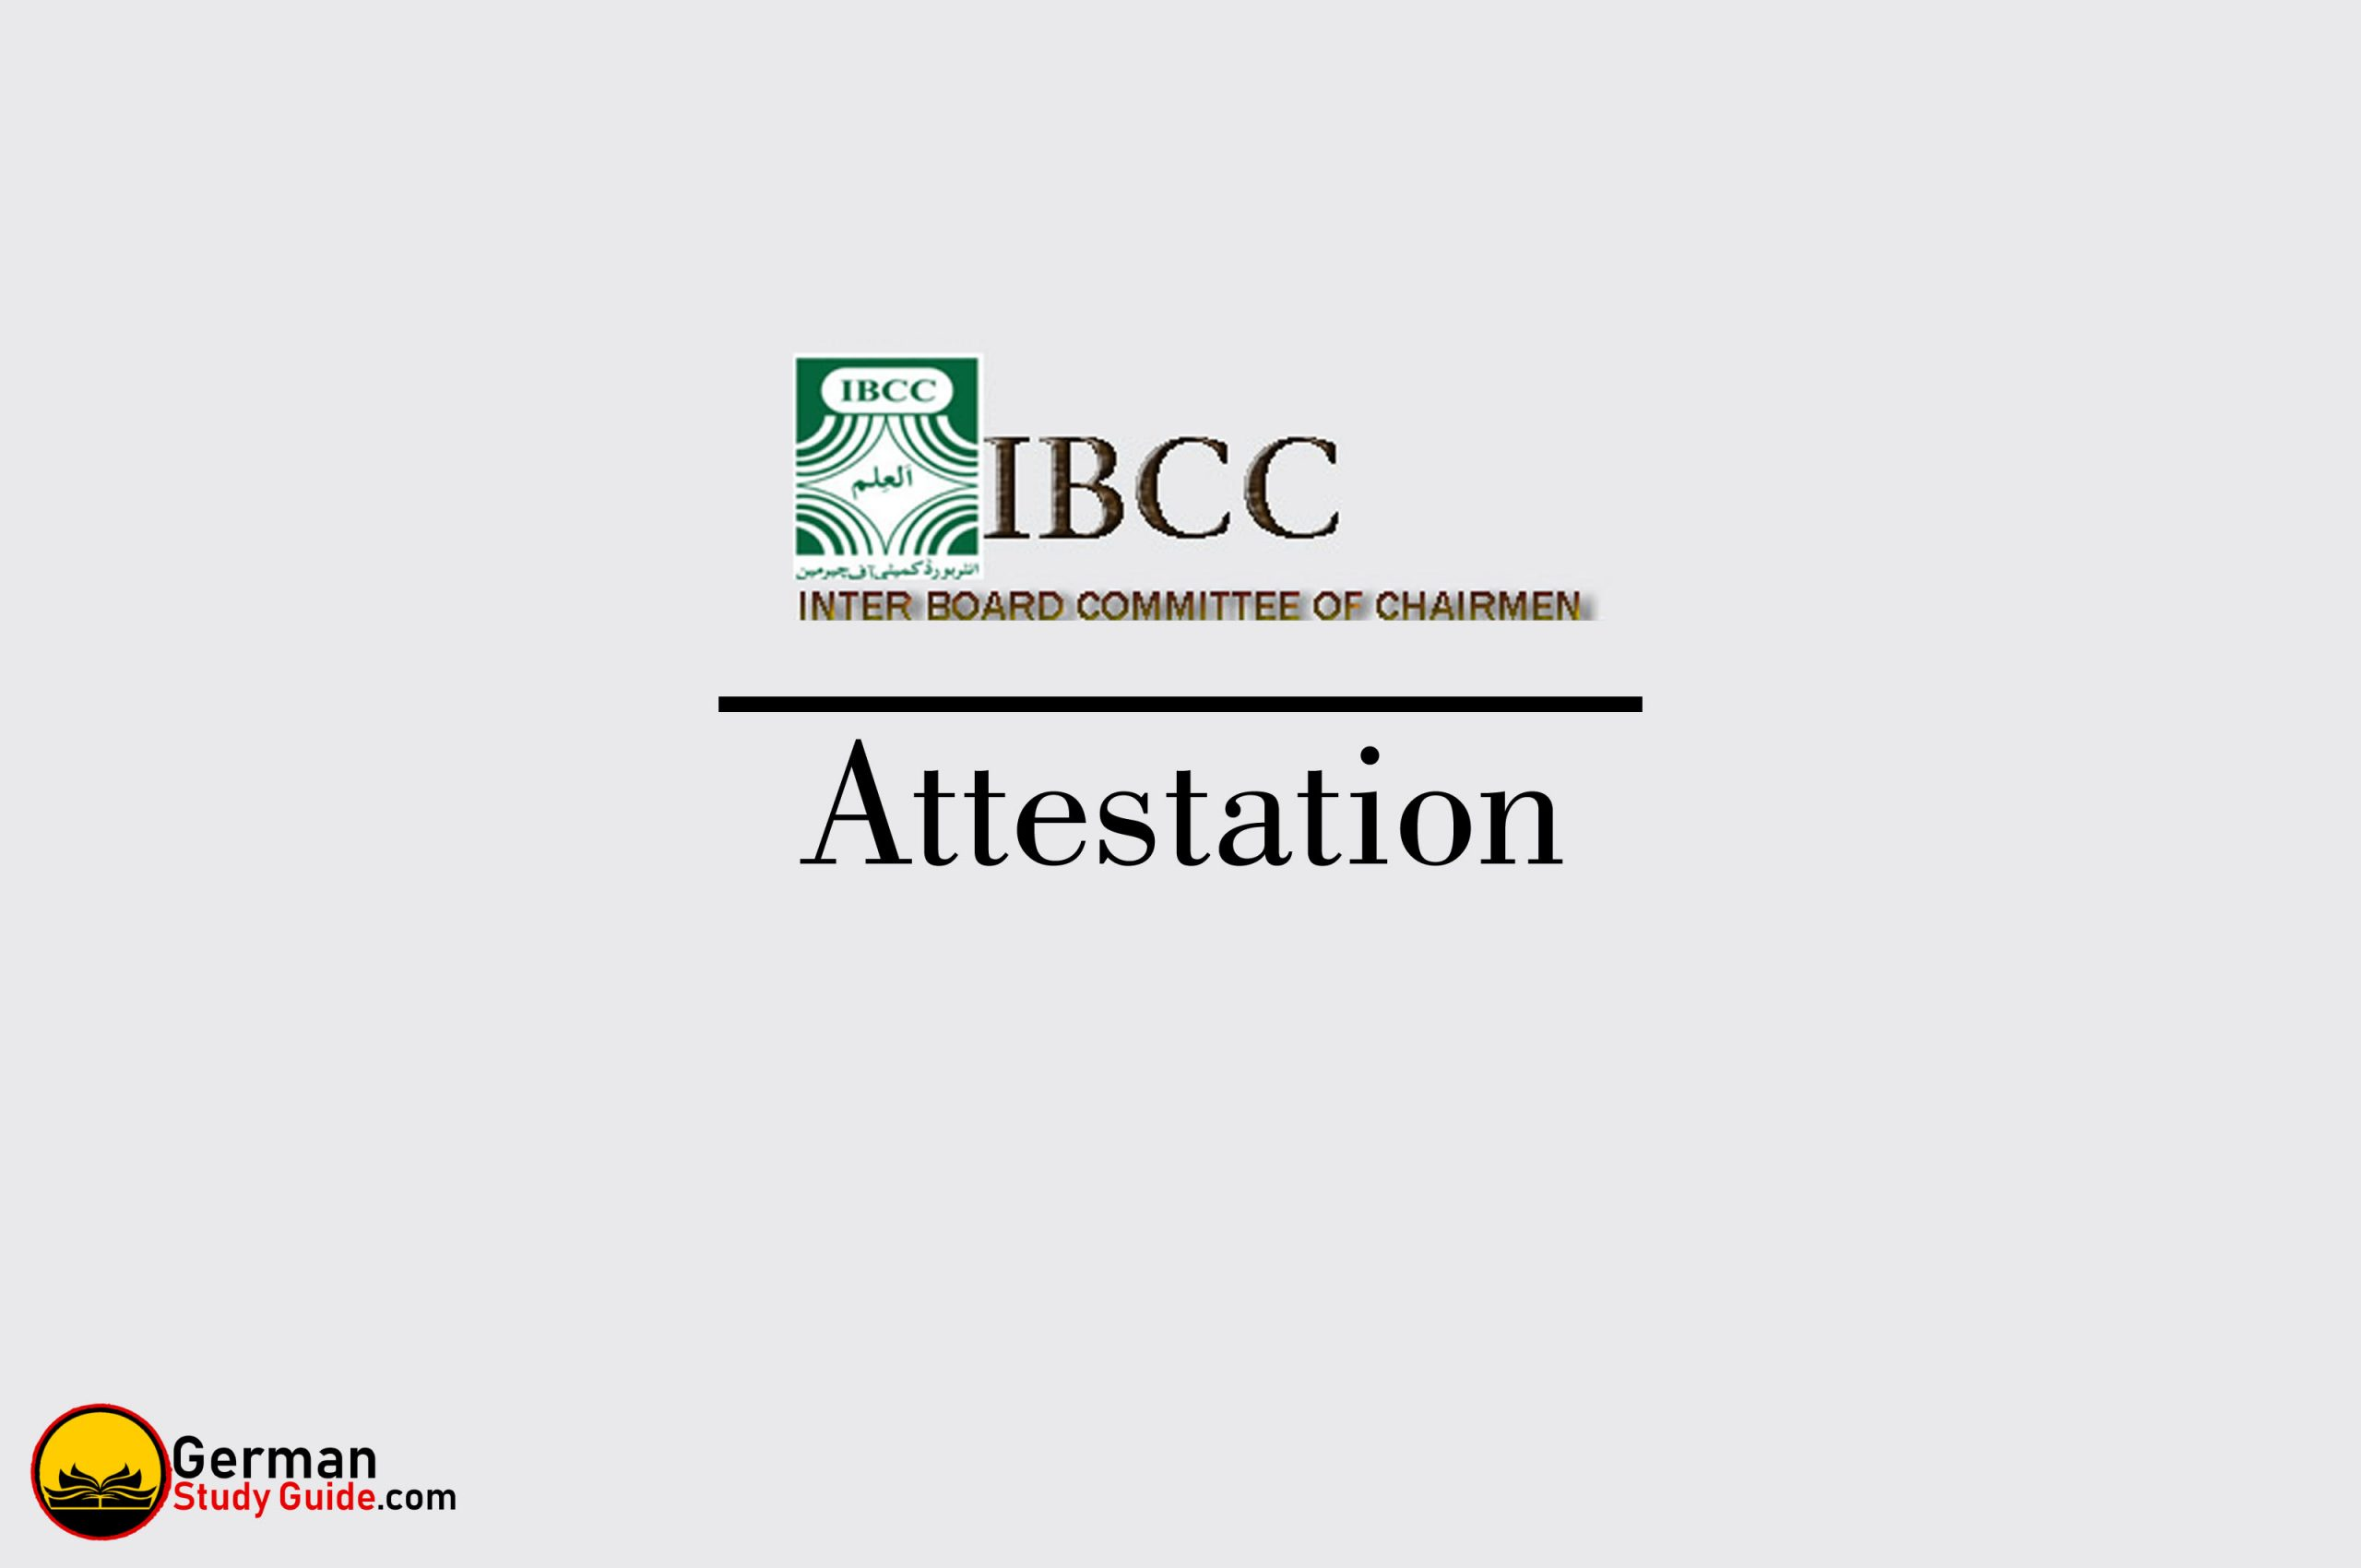 IBCC Attestation Process